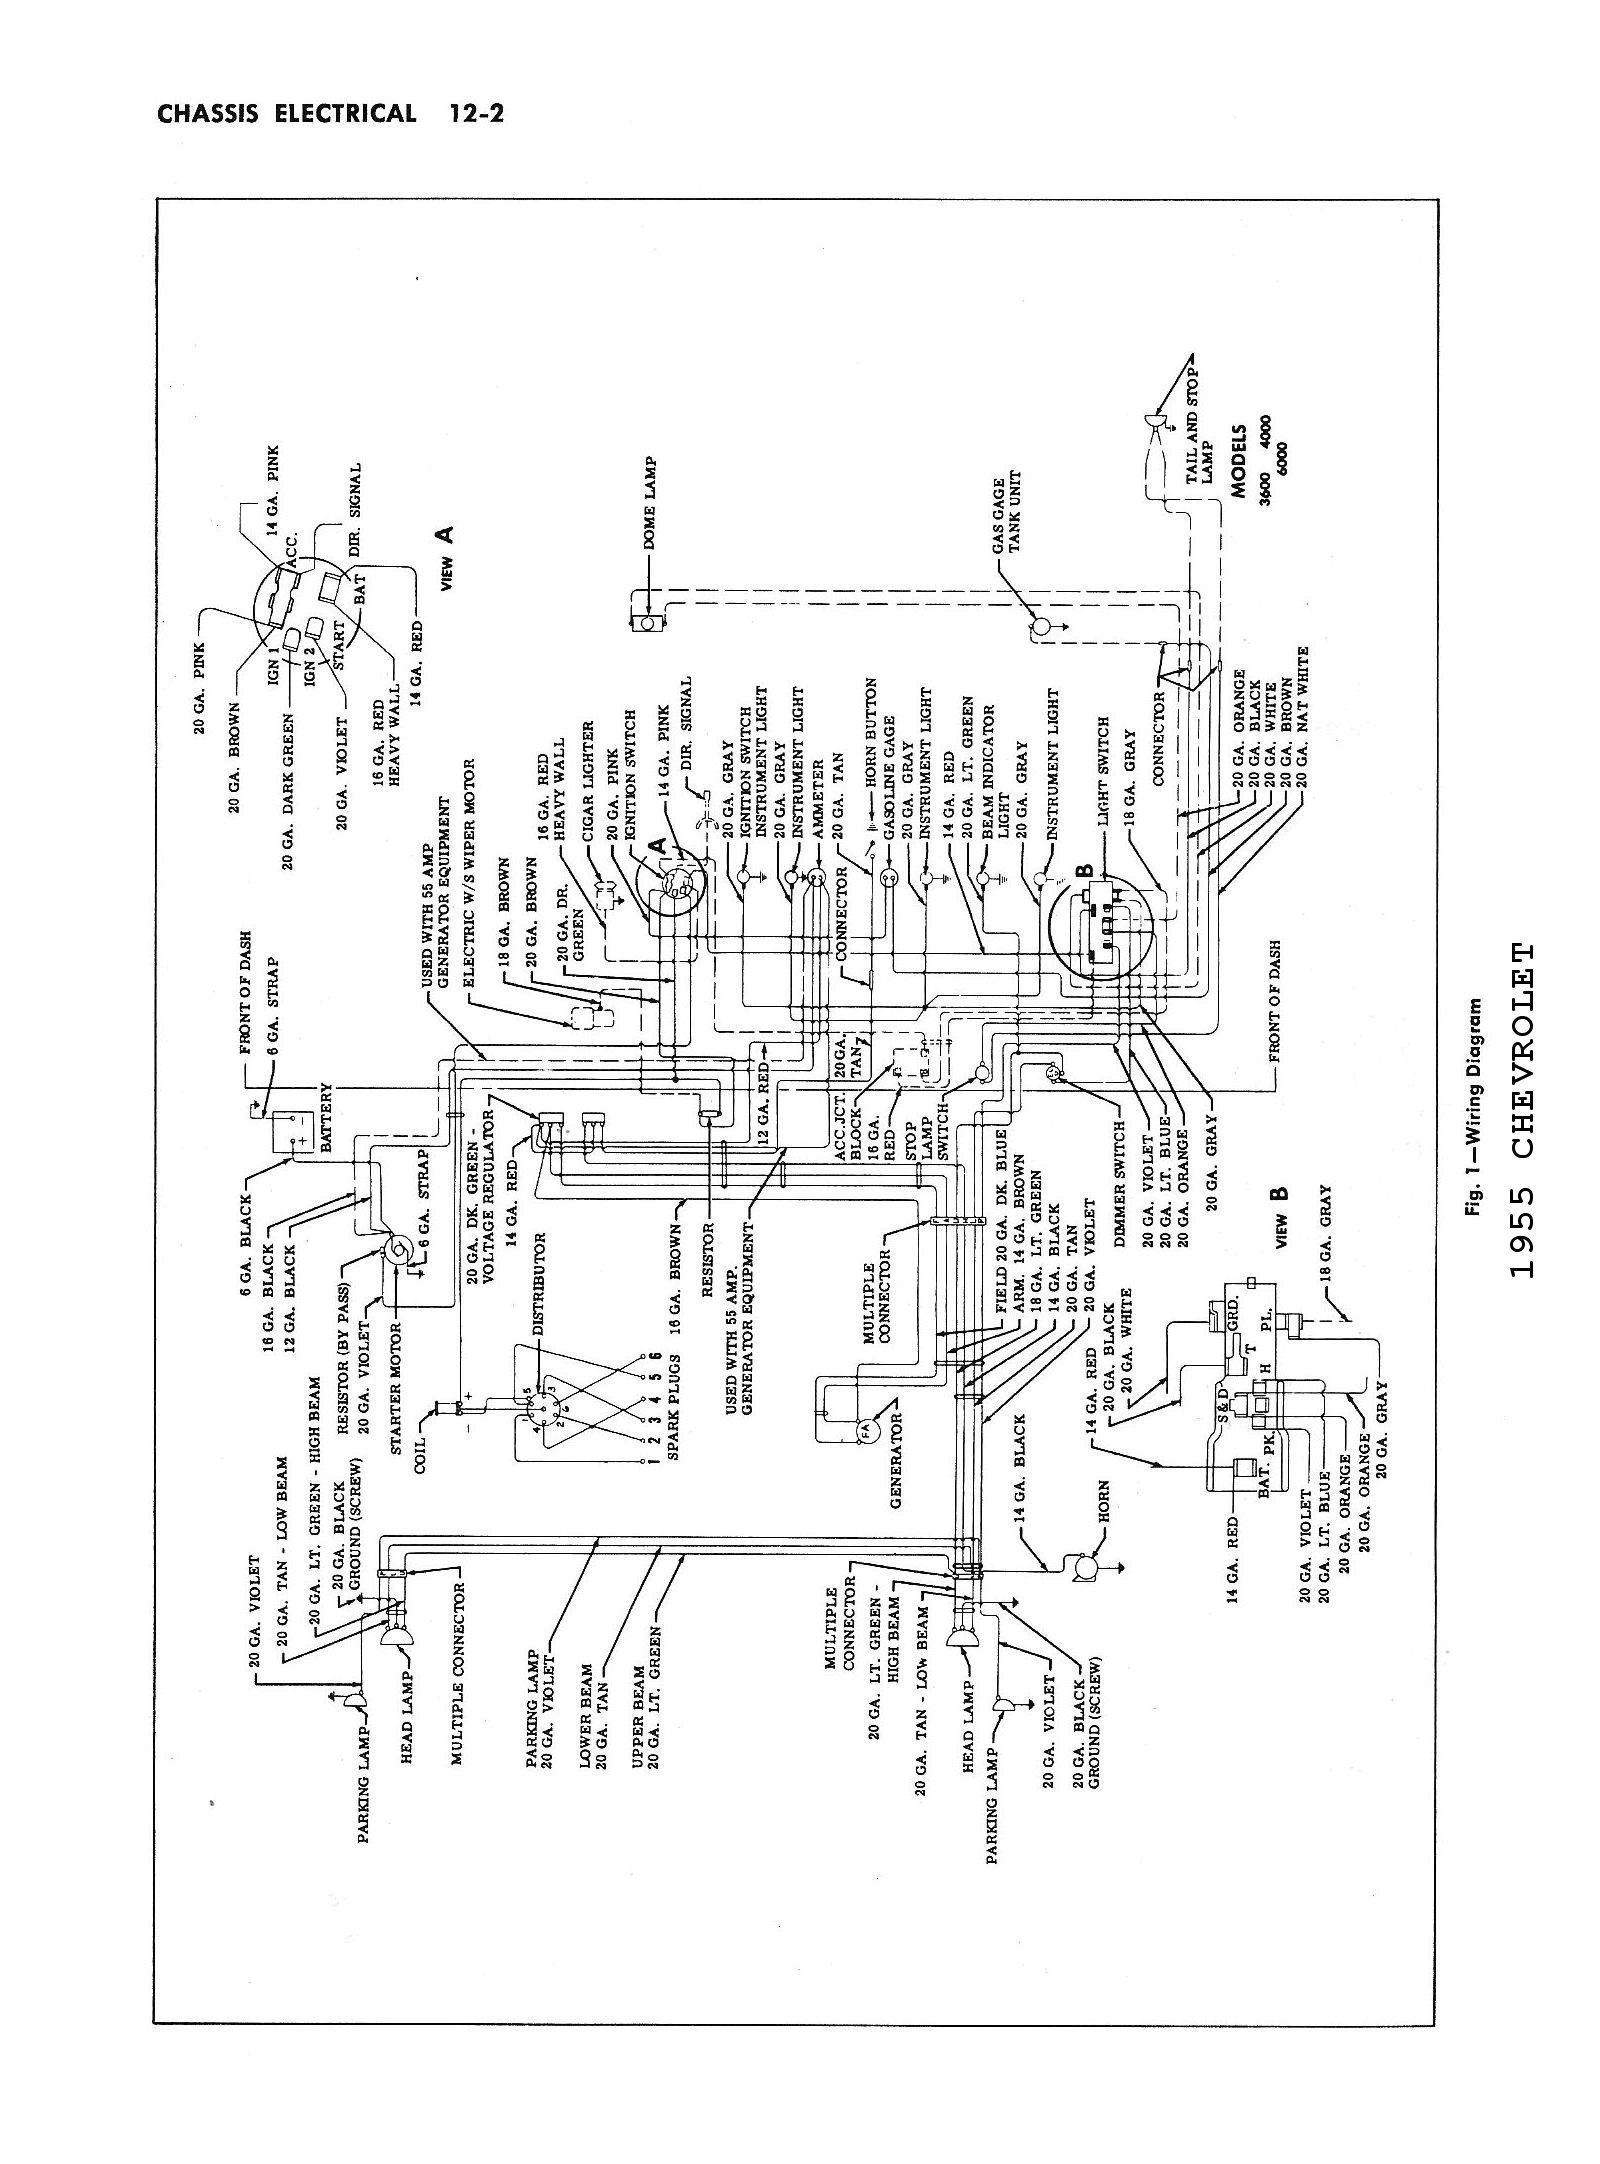 hight resolution of 1955 1955 car wiring diagrams 1955 passenger car wiring 1955 truck wiring